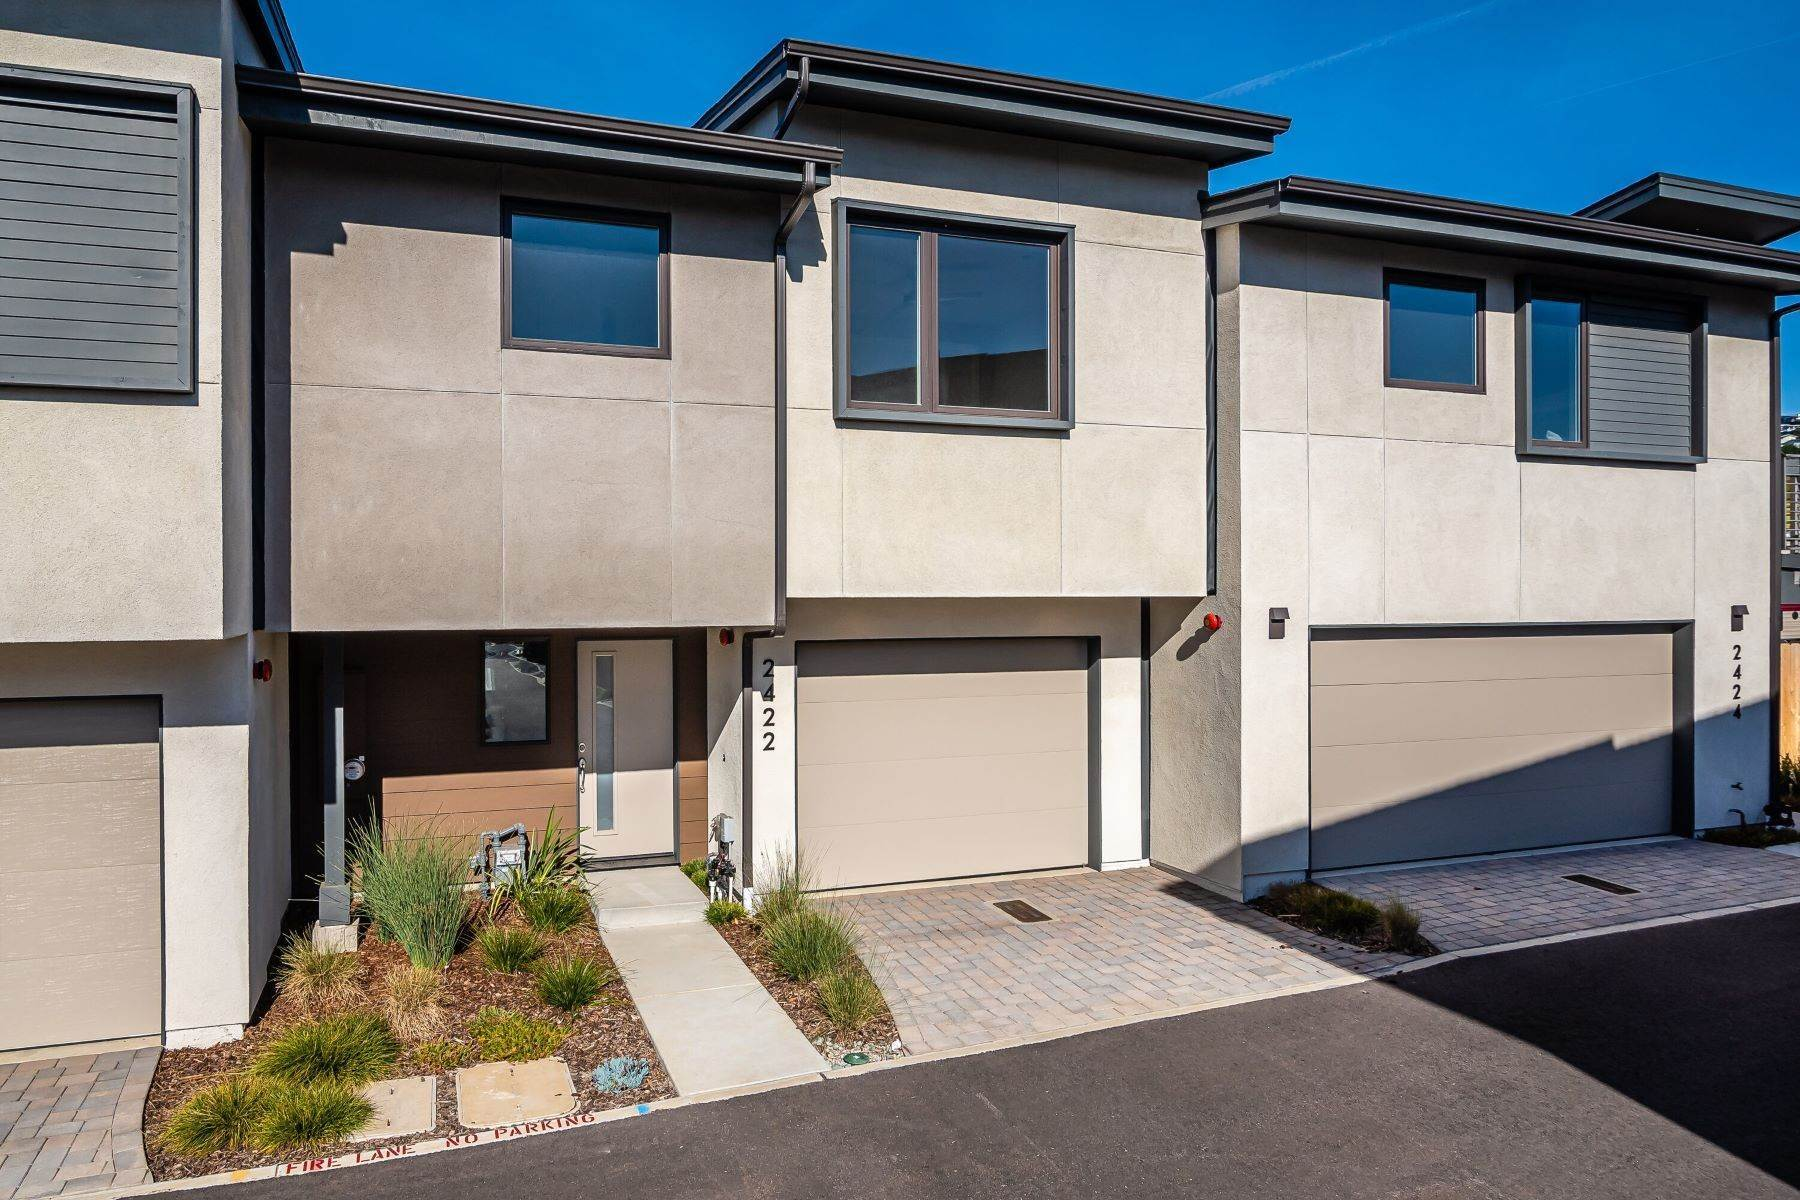 Single Family Homes for Sale at OCEAN VIEWS from this brand new beach home 2422 Main Street Morro Bay, California 93442 United States